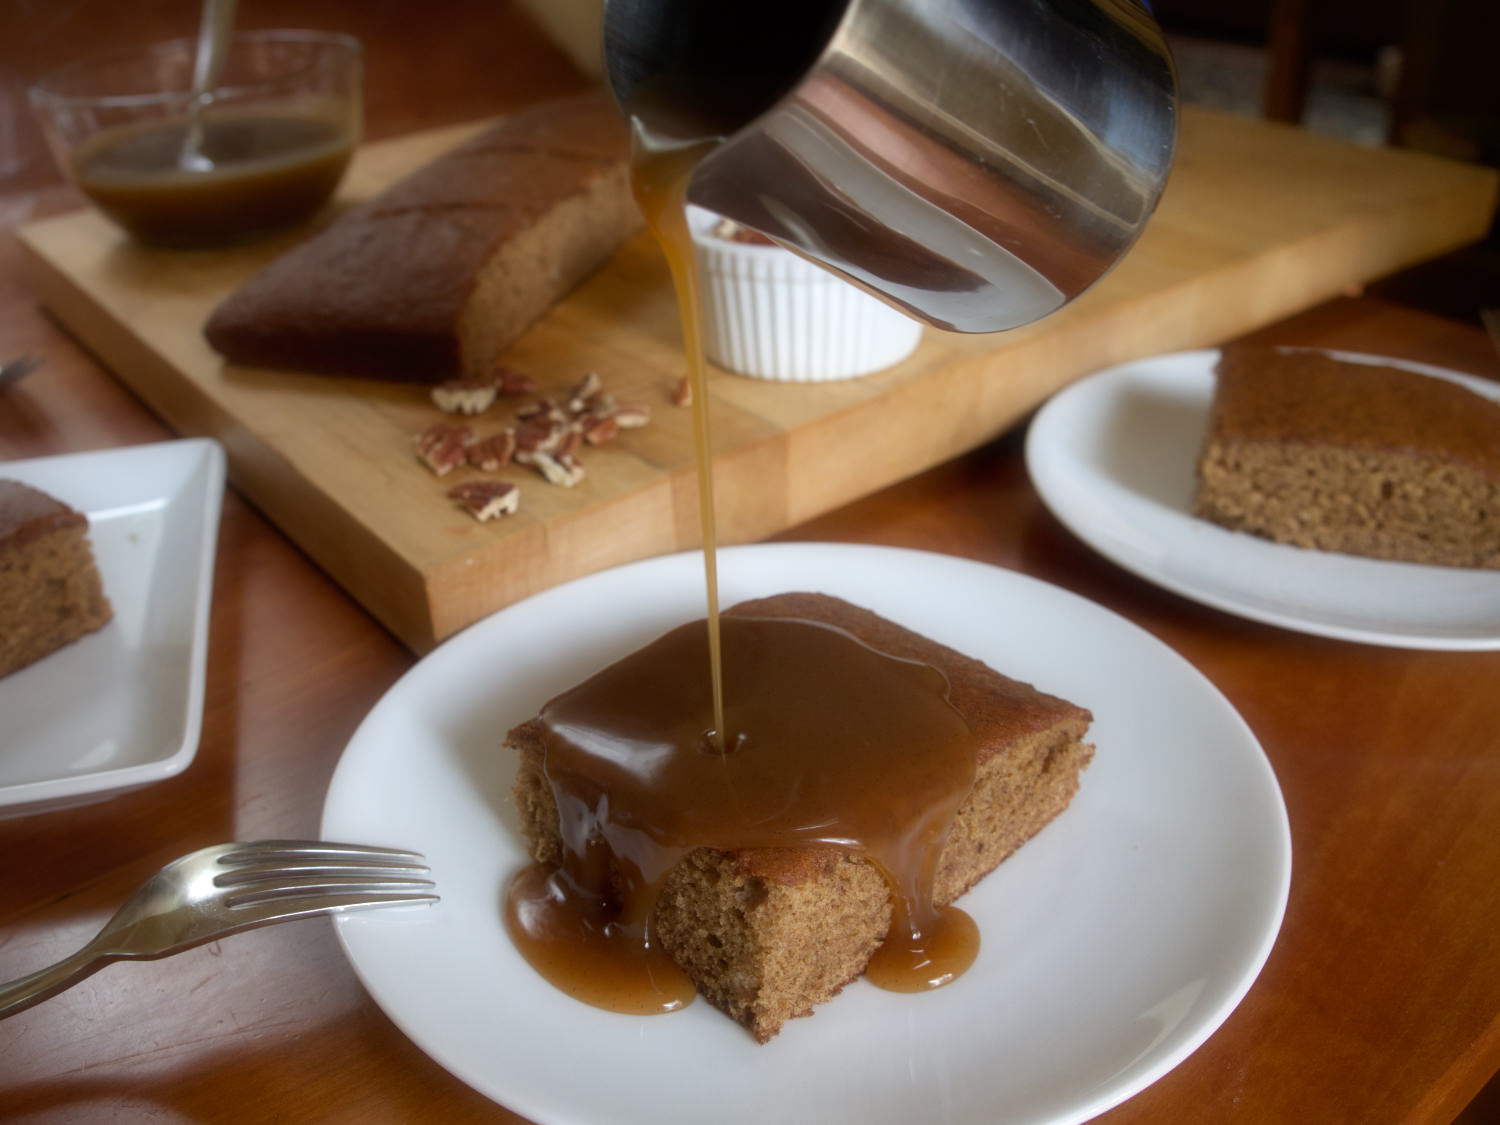 Step two: Pour on warm toffee sauce.